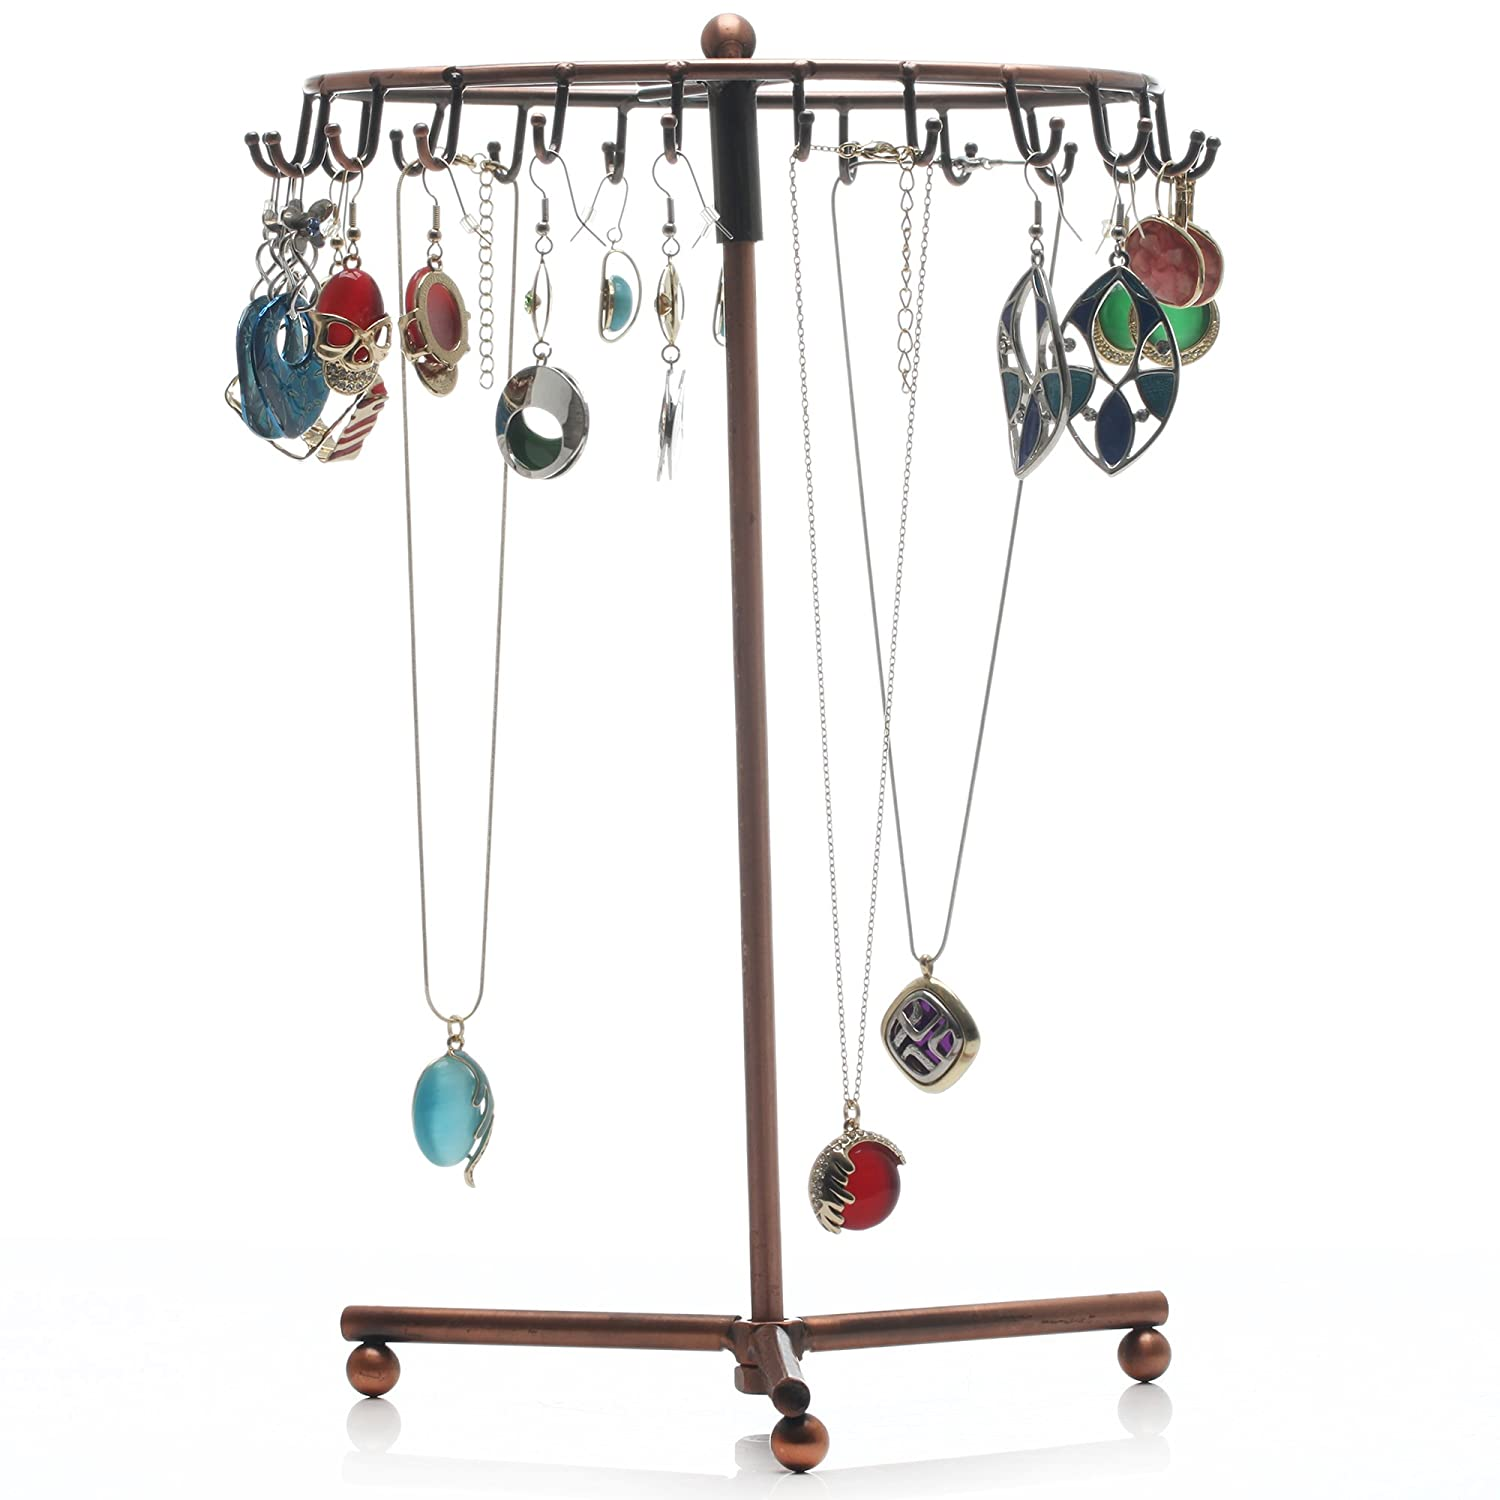 Readaeer Rotating Jewelry Holder Stand Display Organizer Earrings Necklaces Bracelets COMINHKPR100559